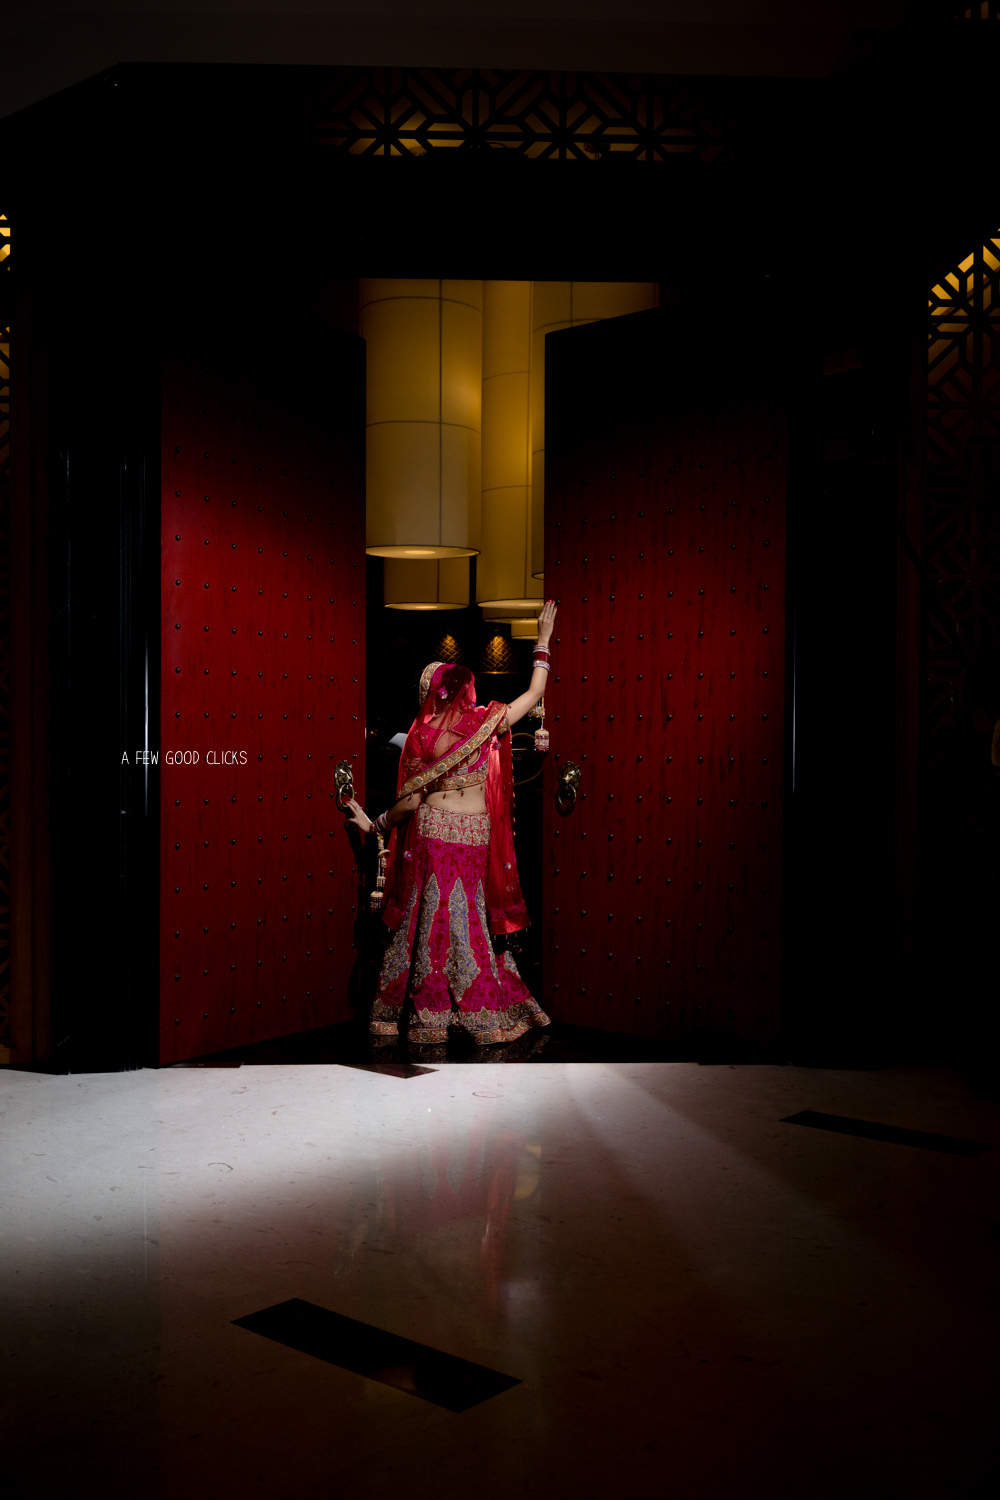 indian-bride-wedding-photography-by-afewgoodclicks-54.jpg